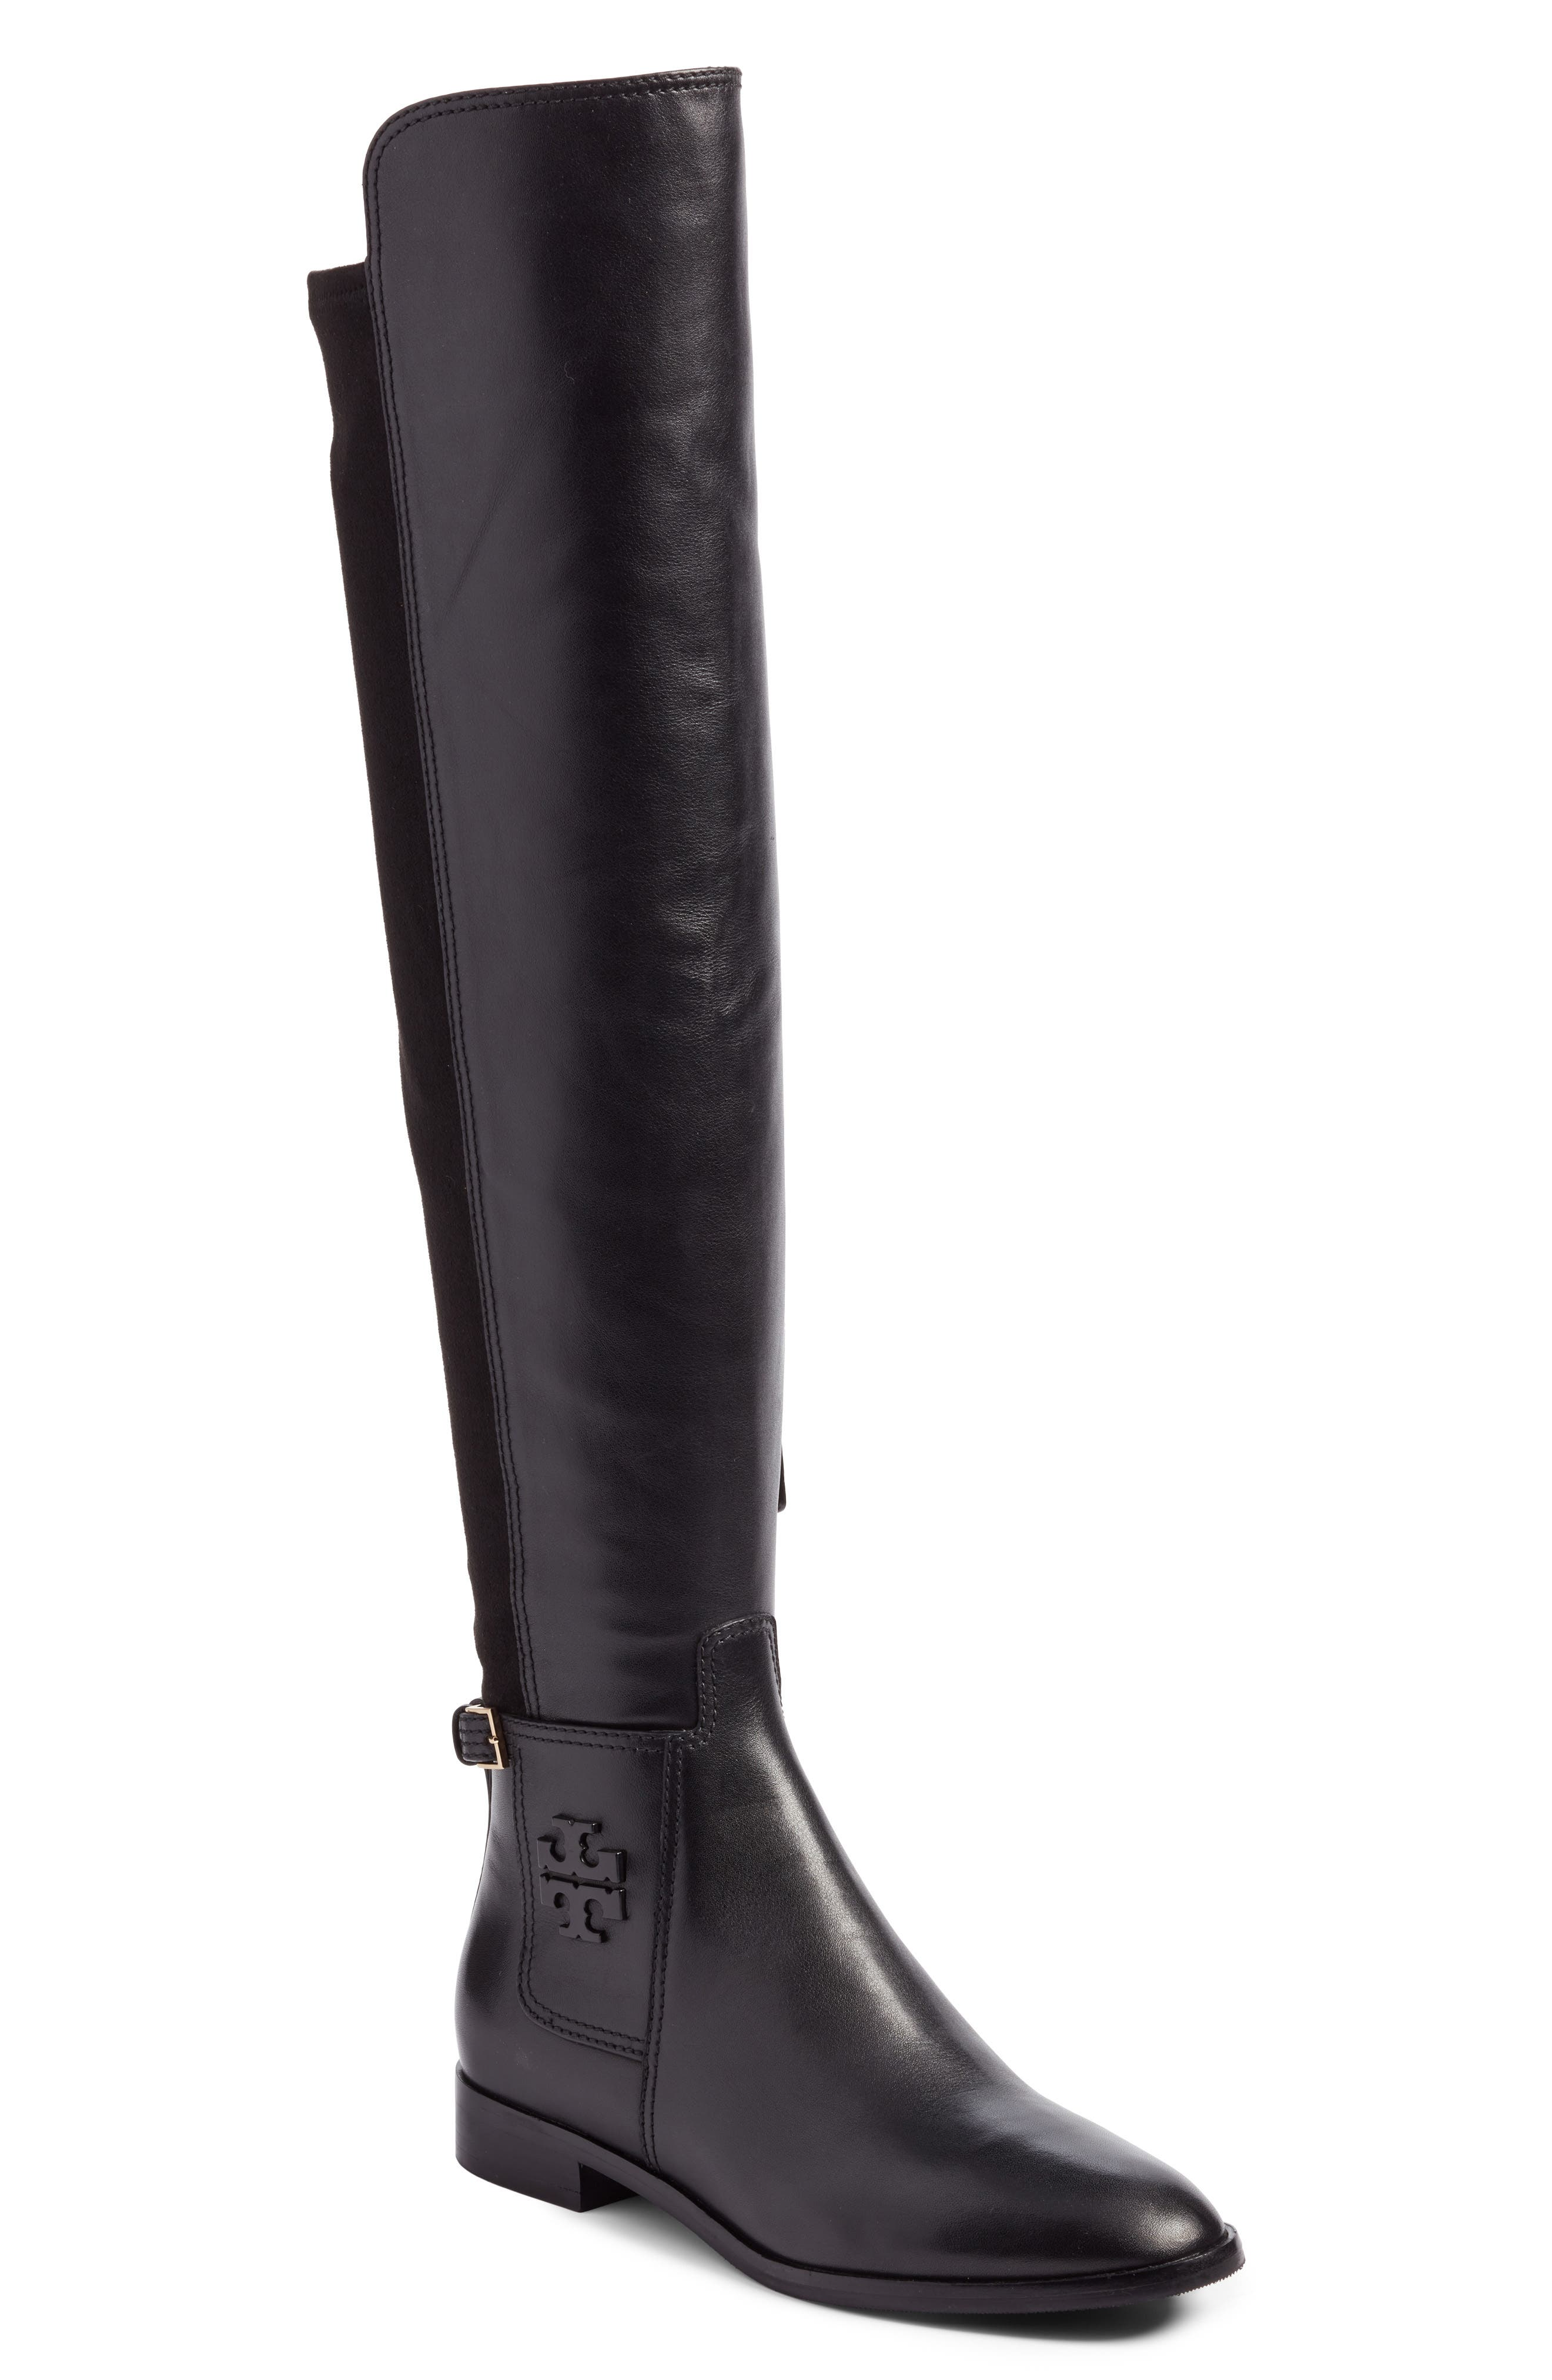 TORY BURCH Wyatt Over the Knee Boot, Main, color, 001